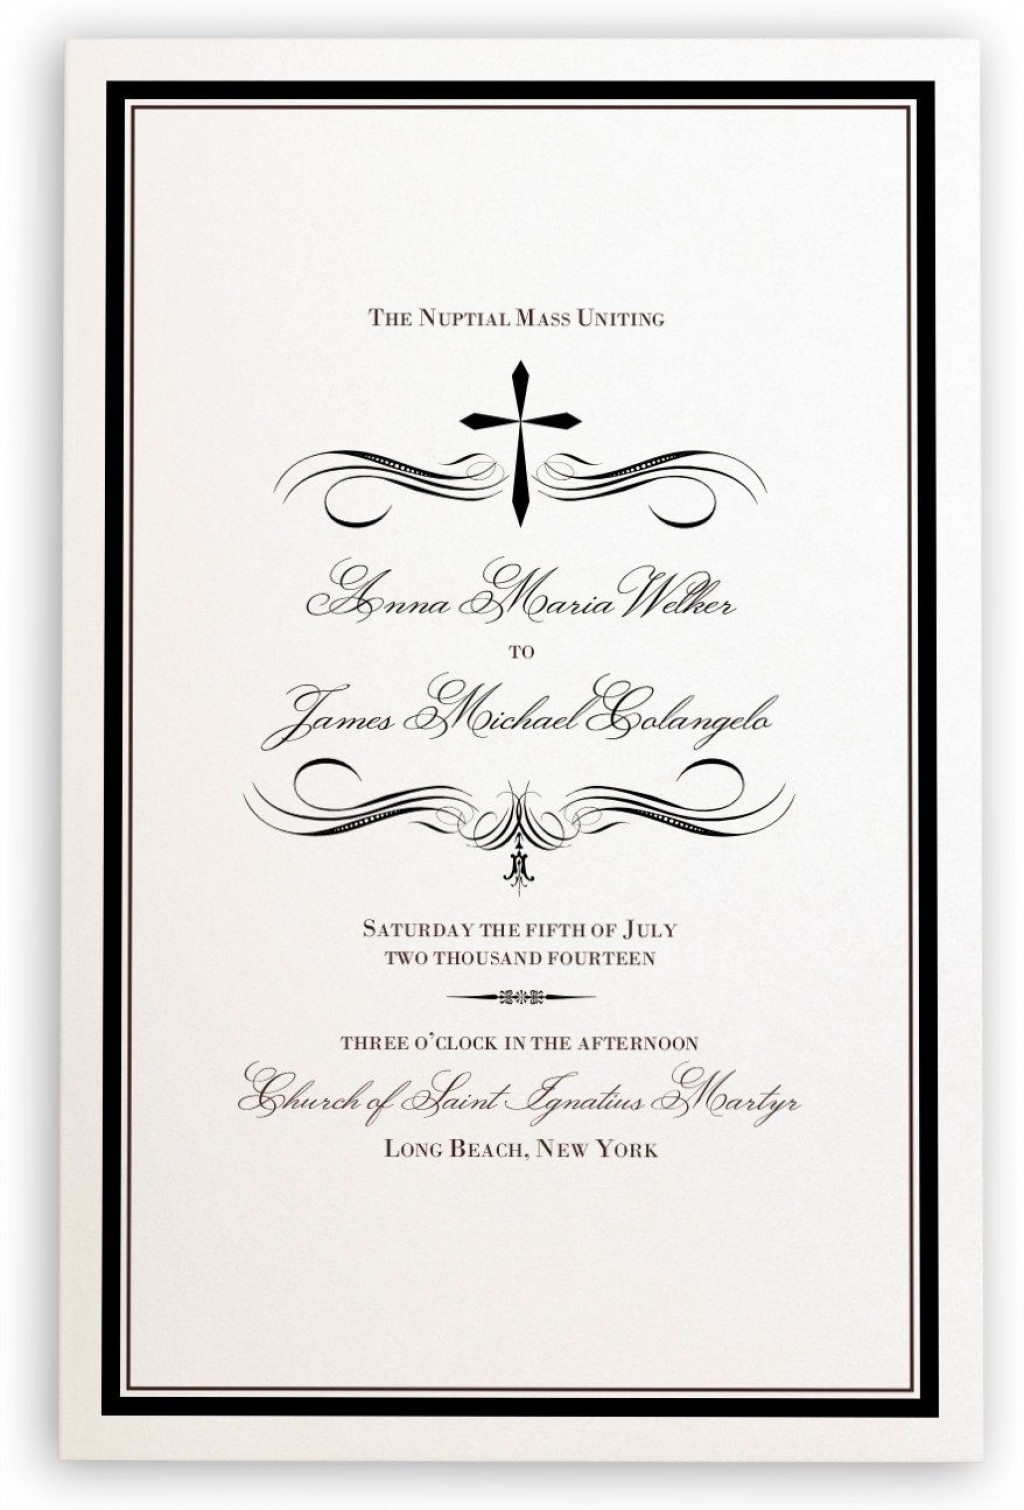 005 Simple Catholic Wedding Program Template Highest Quality  Roman Idea (with Readings)Large